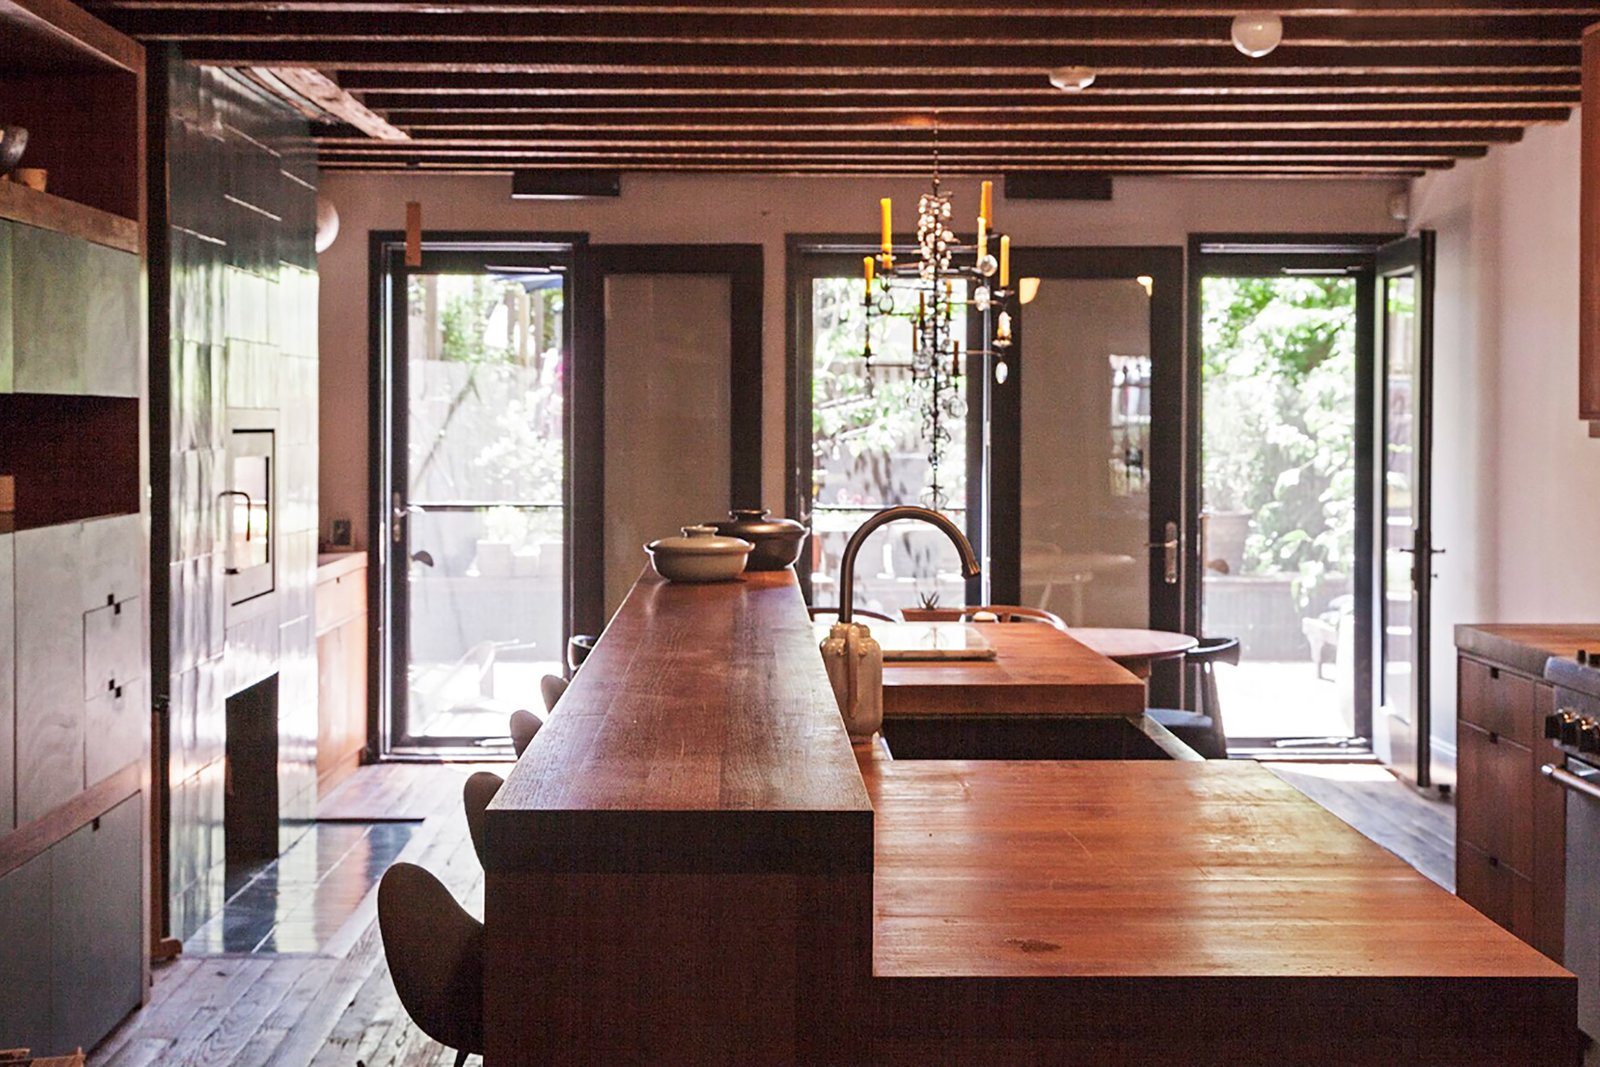 Maggie Gyllenhaal and Peter Sarsgaard's Park Slope Townhouse kitchen